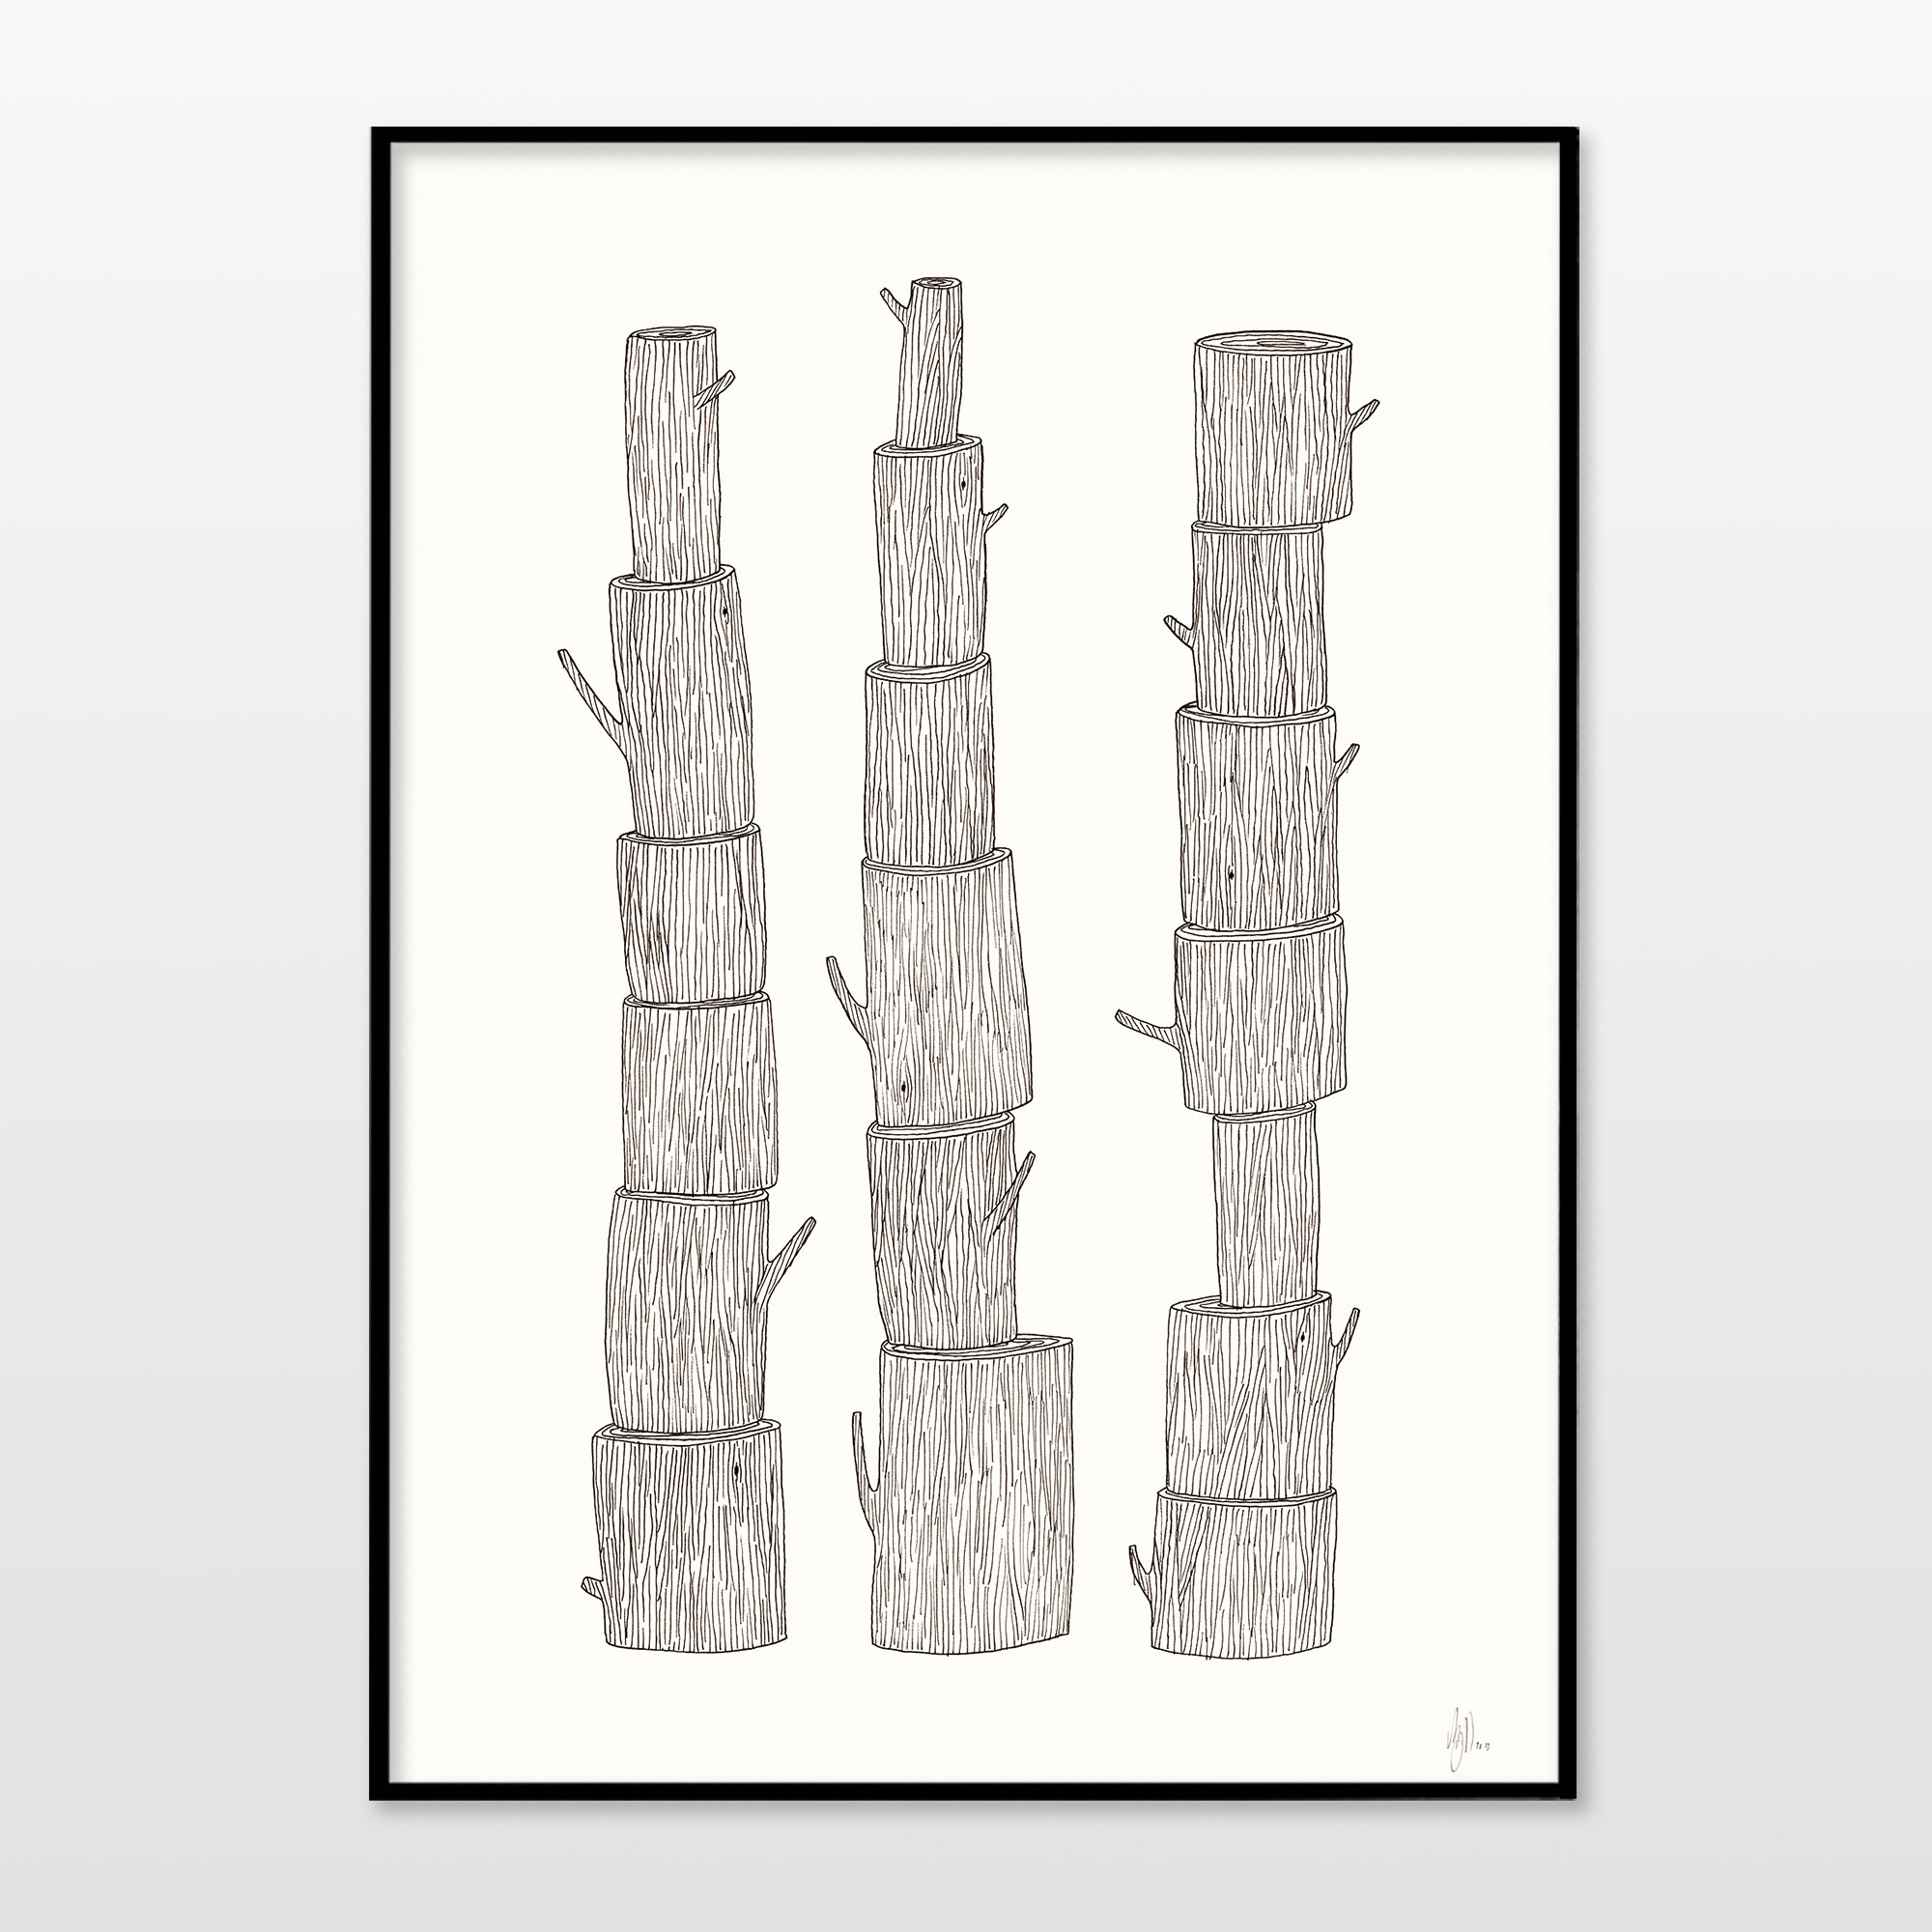 art-prints, giclee, family-friendly, graphical, minimalistic, botany, nature, black, white, ink, paper, cute, danish, decorative, design, interior, interior-design, nordic, posters, prints, scandinavien, trees, Buy original high quality art. Paintings, drawings, limited edition prints & posters by talented artists.